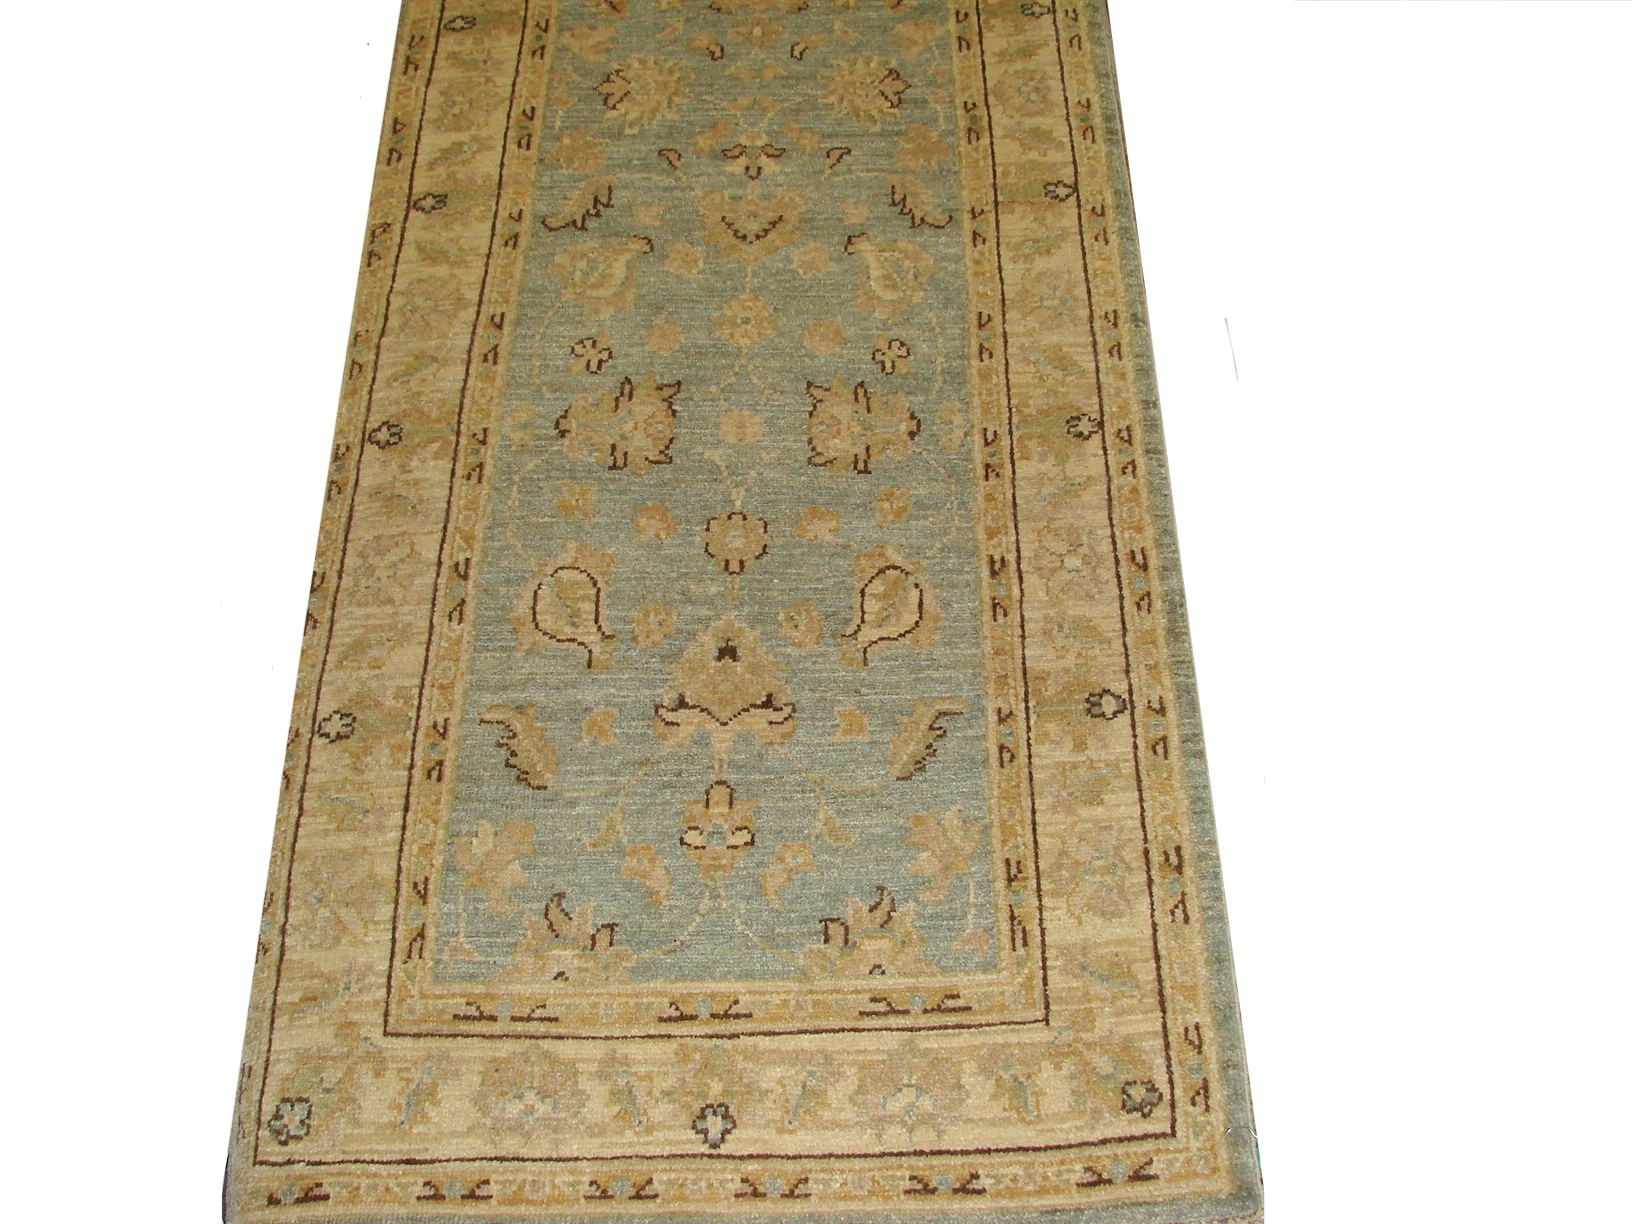 10 ft. Runner Peshawar Hand Knotted Wool Area Rug - MR012017